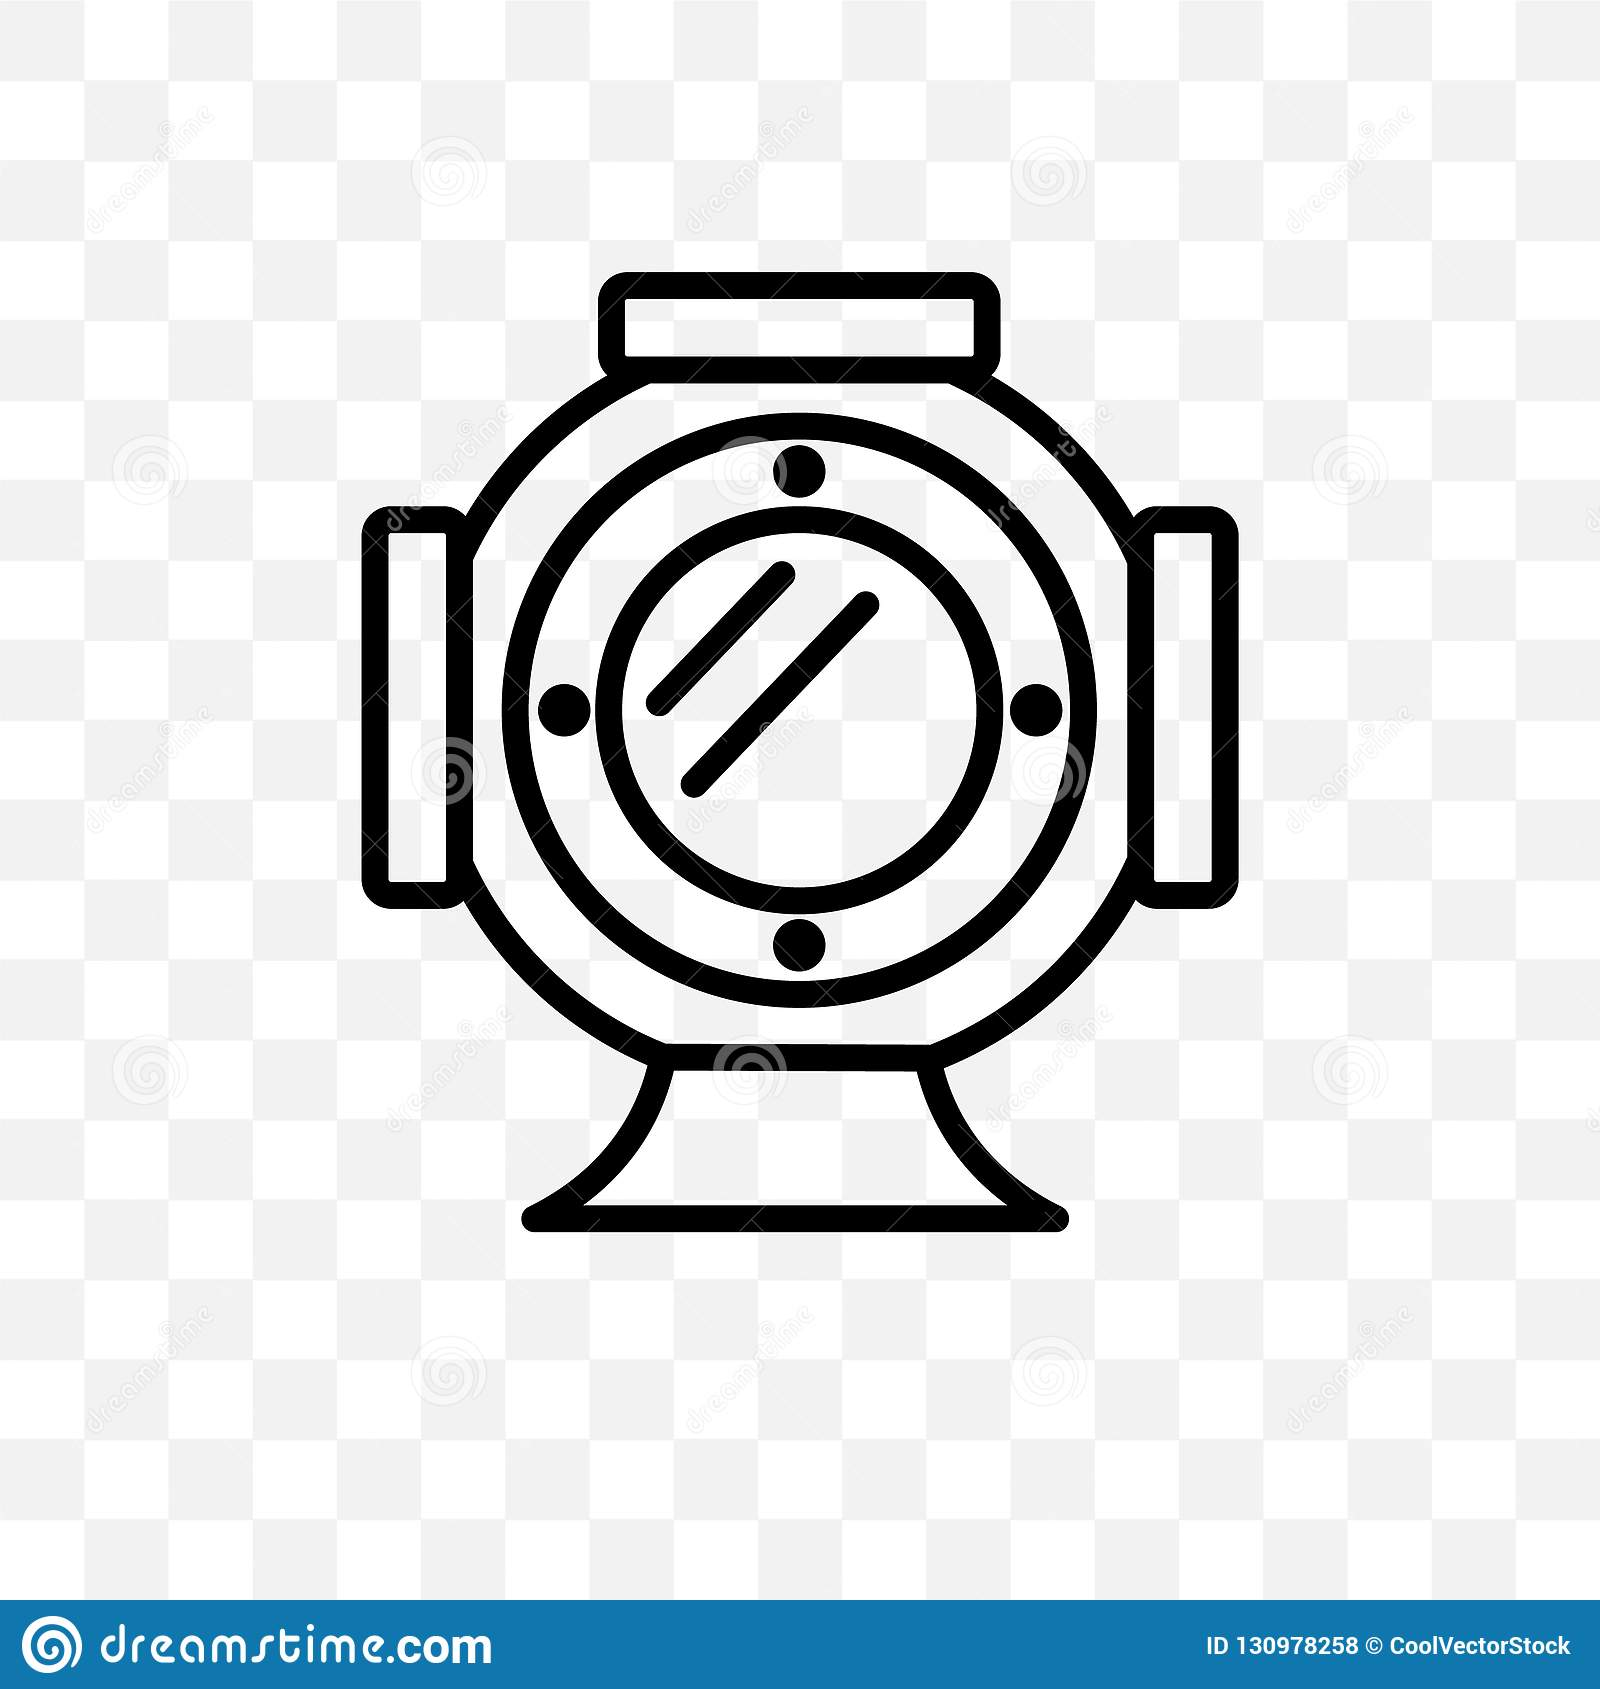 Diving Helmet Vector Linear Icon Isolated On Transparent